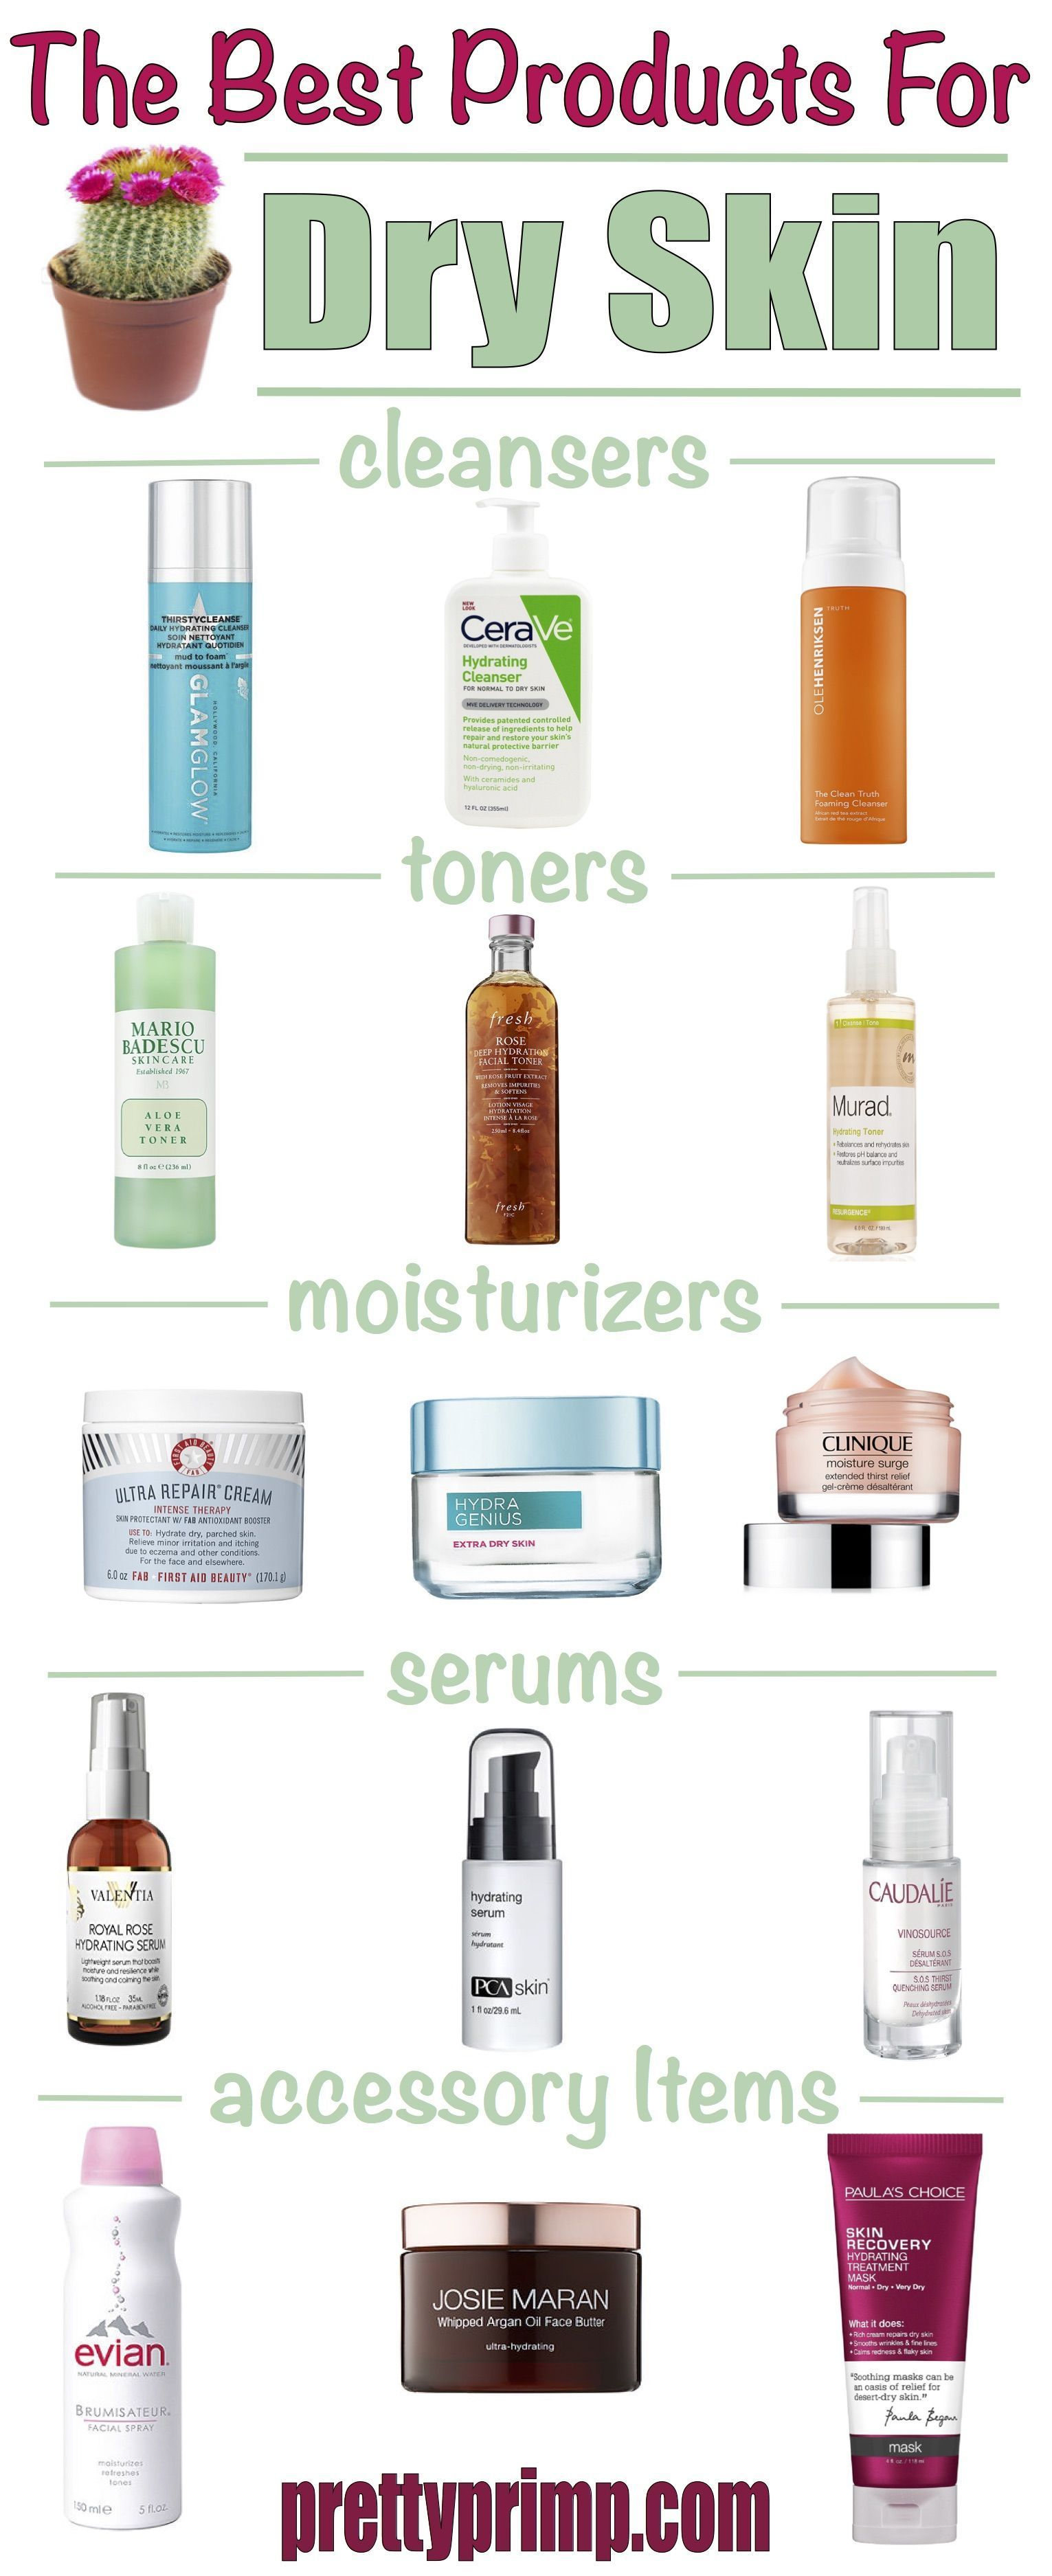 Check Out The Best Products For Dry Skin From The Drugstore And High End These Skincare Products Fo In 2020 Dry Skin Cleansers Skin Cleanser Products Oil For Dry Skin